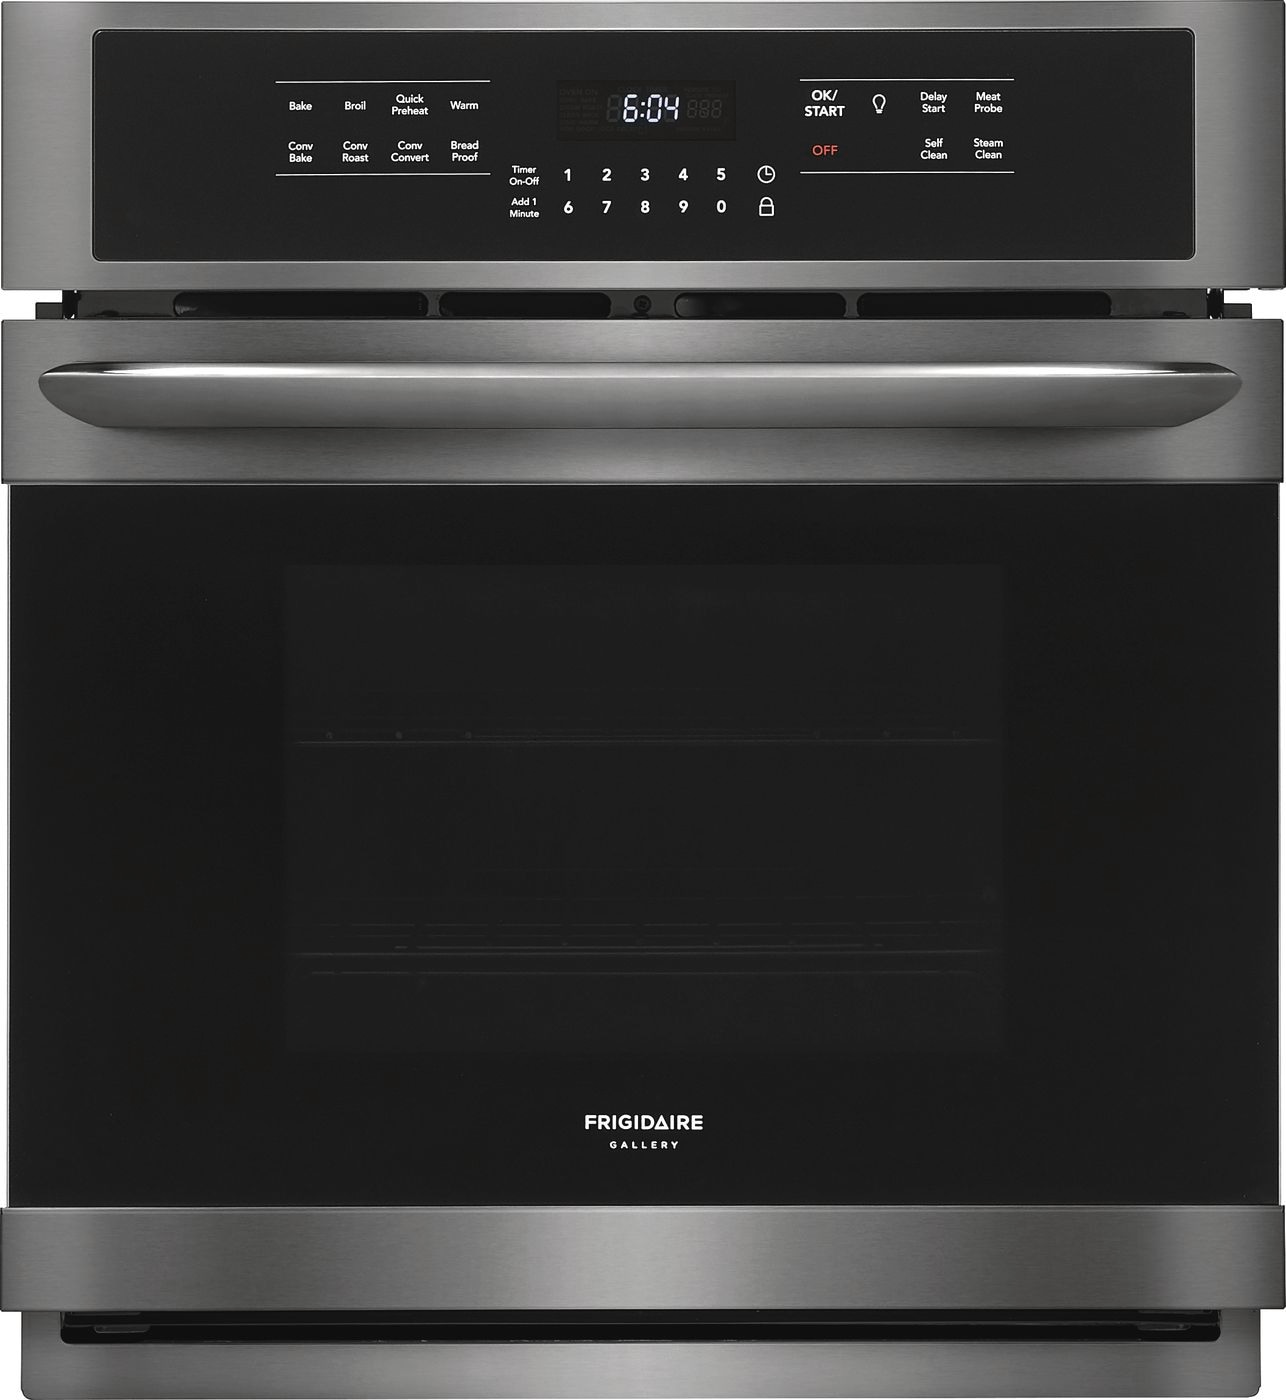 "Model: FGEW2766UD | Frigidaire Gallery 27"" Single Electric Wall Oven"